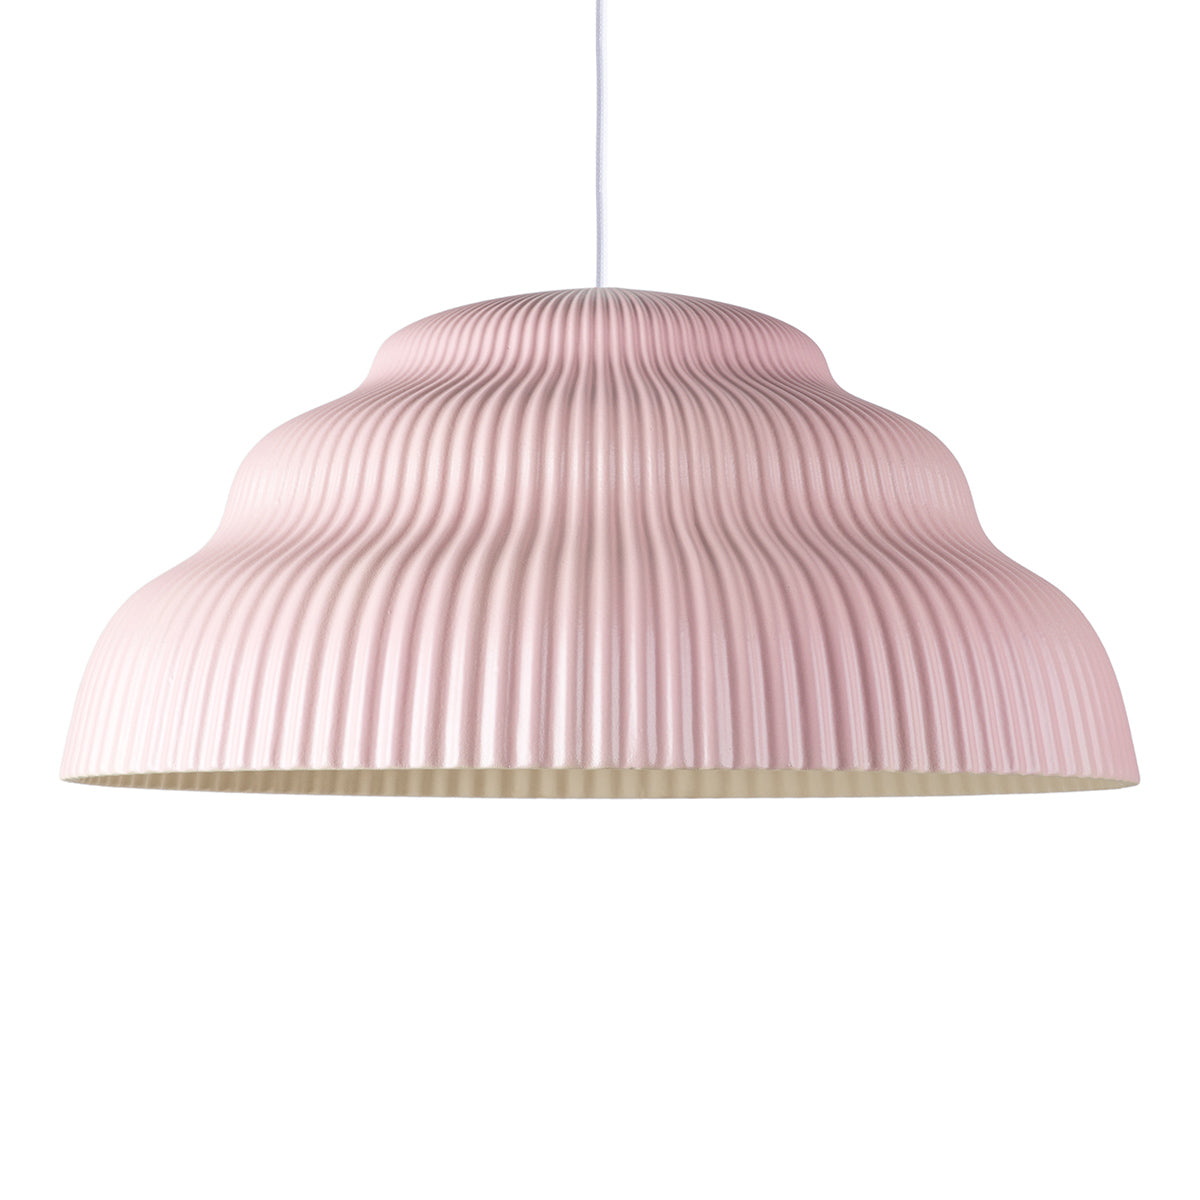 Kaskad Blush - Schneid - Schneid Lighting - Schneid Kaskad Blush Lamp Small - Julia Jessen and Niklas Jessen - Sustainable Design  - German Design - Lighting - Blush | Sustainable Living | Simple Design